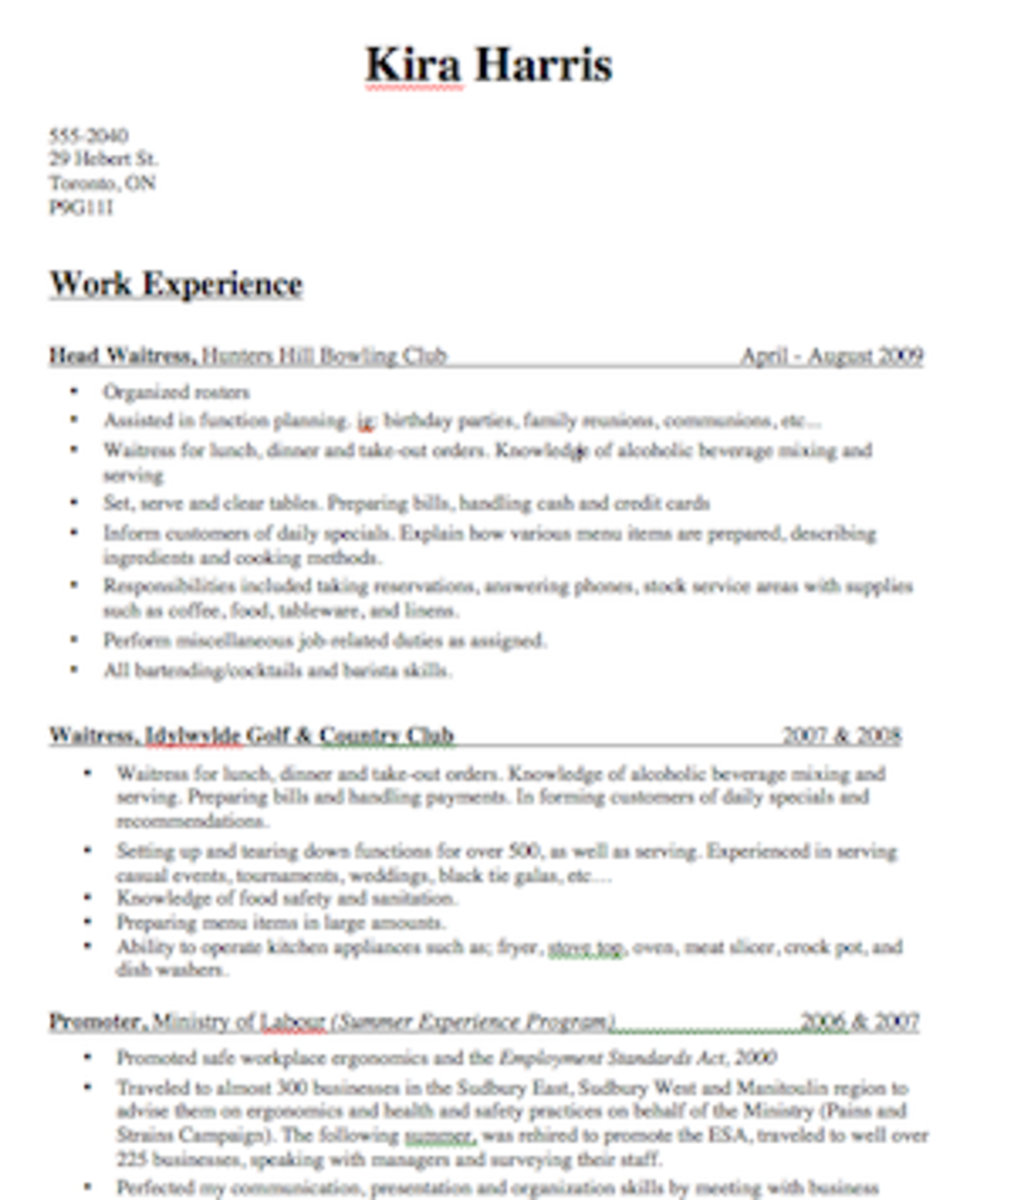 bartender resume tips 03052017